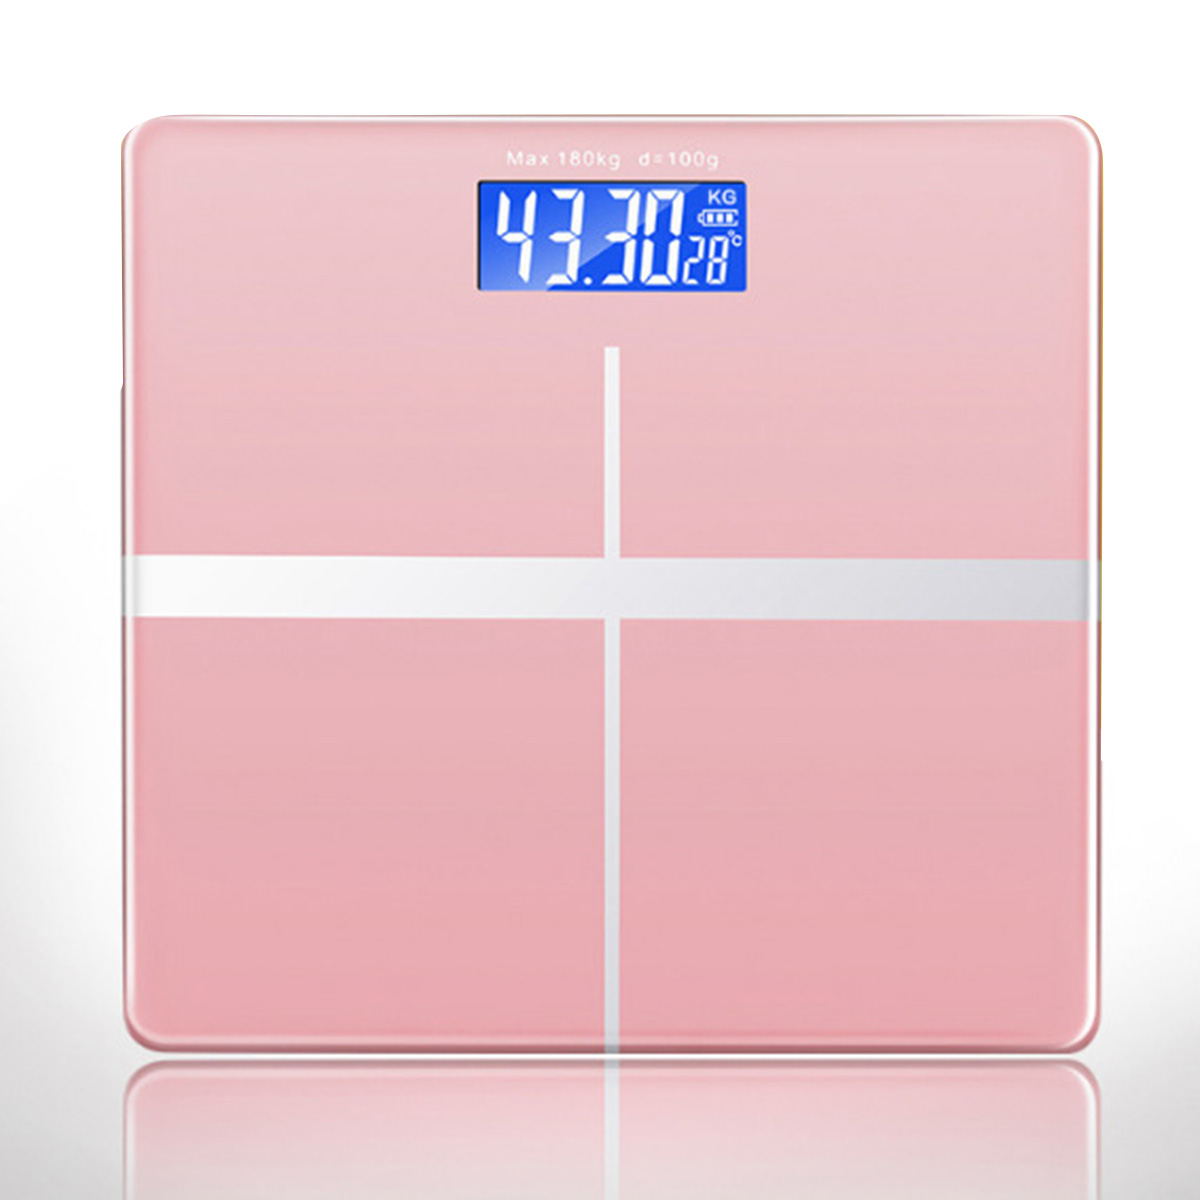 180KG Digital Weighing Scale Electronic USB Rechargeable Weight Scale with Temperature Display